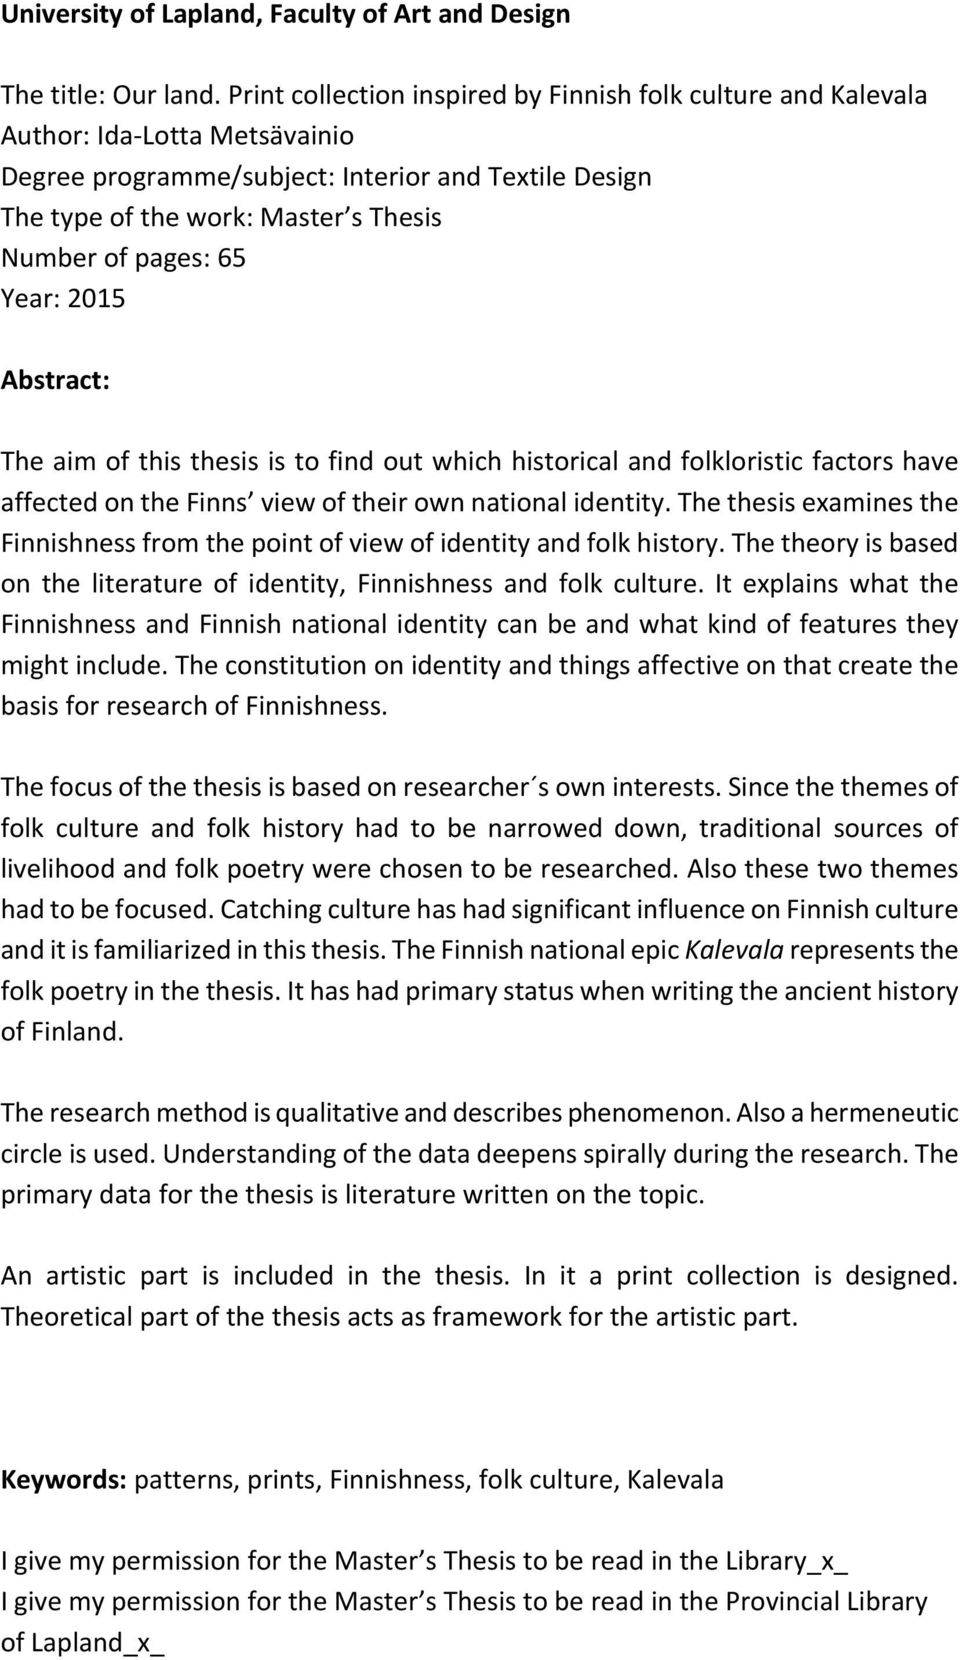 pages: 65 Year: 2015 Abstract: The aim of this thesis is to find out which historical and folkloristic factors have affected on the Finns view of their own national identity.